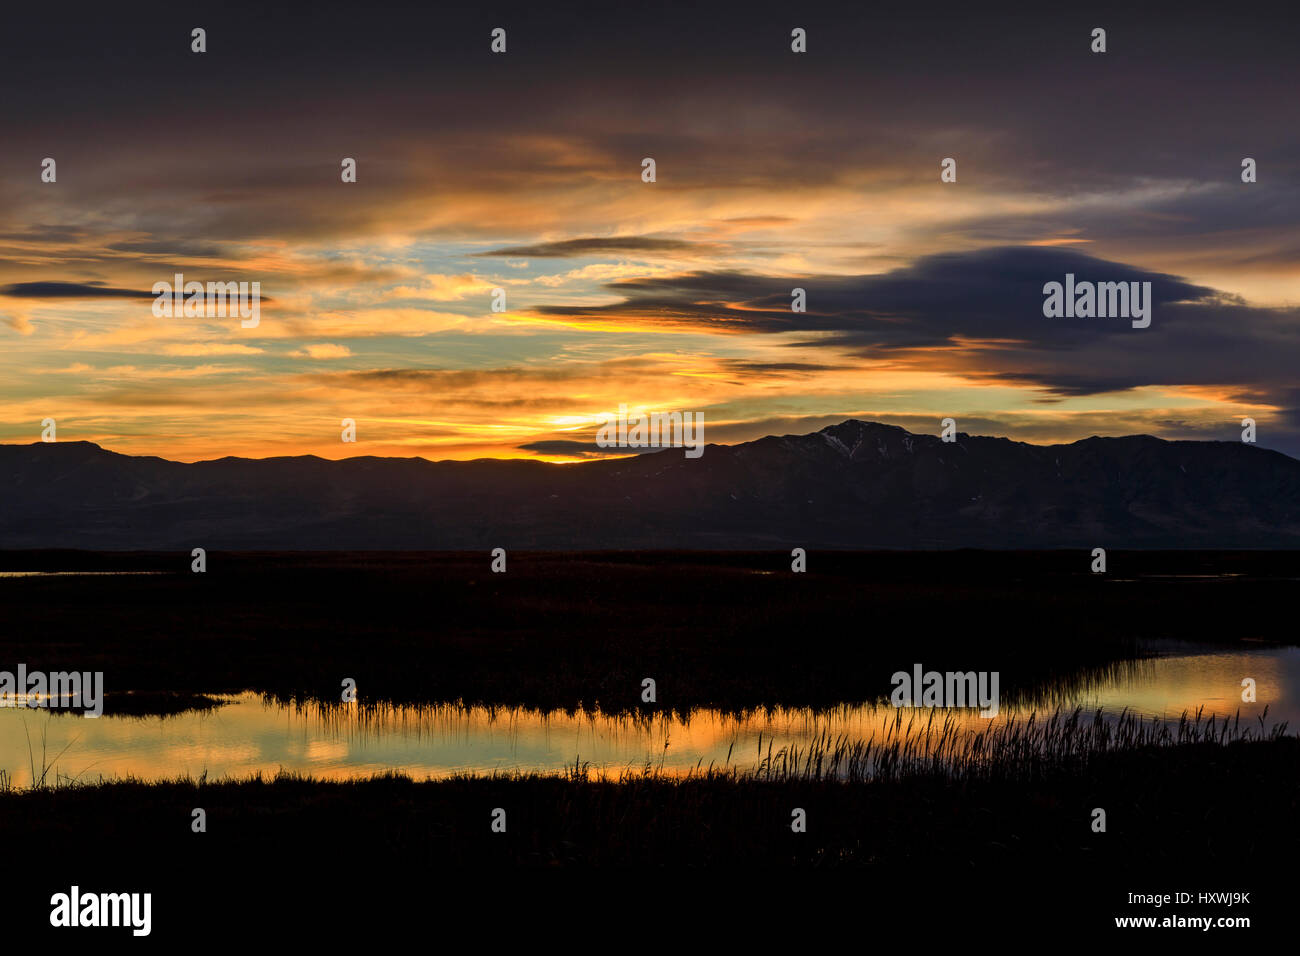 The sun sets over the Promontory Mountains casting a golden light on the clouds and reflecting on the water at Bear - Stock Image